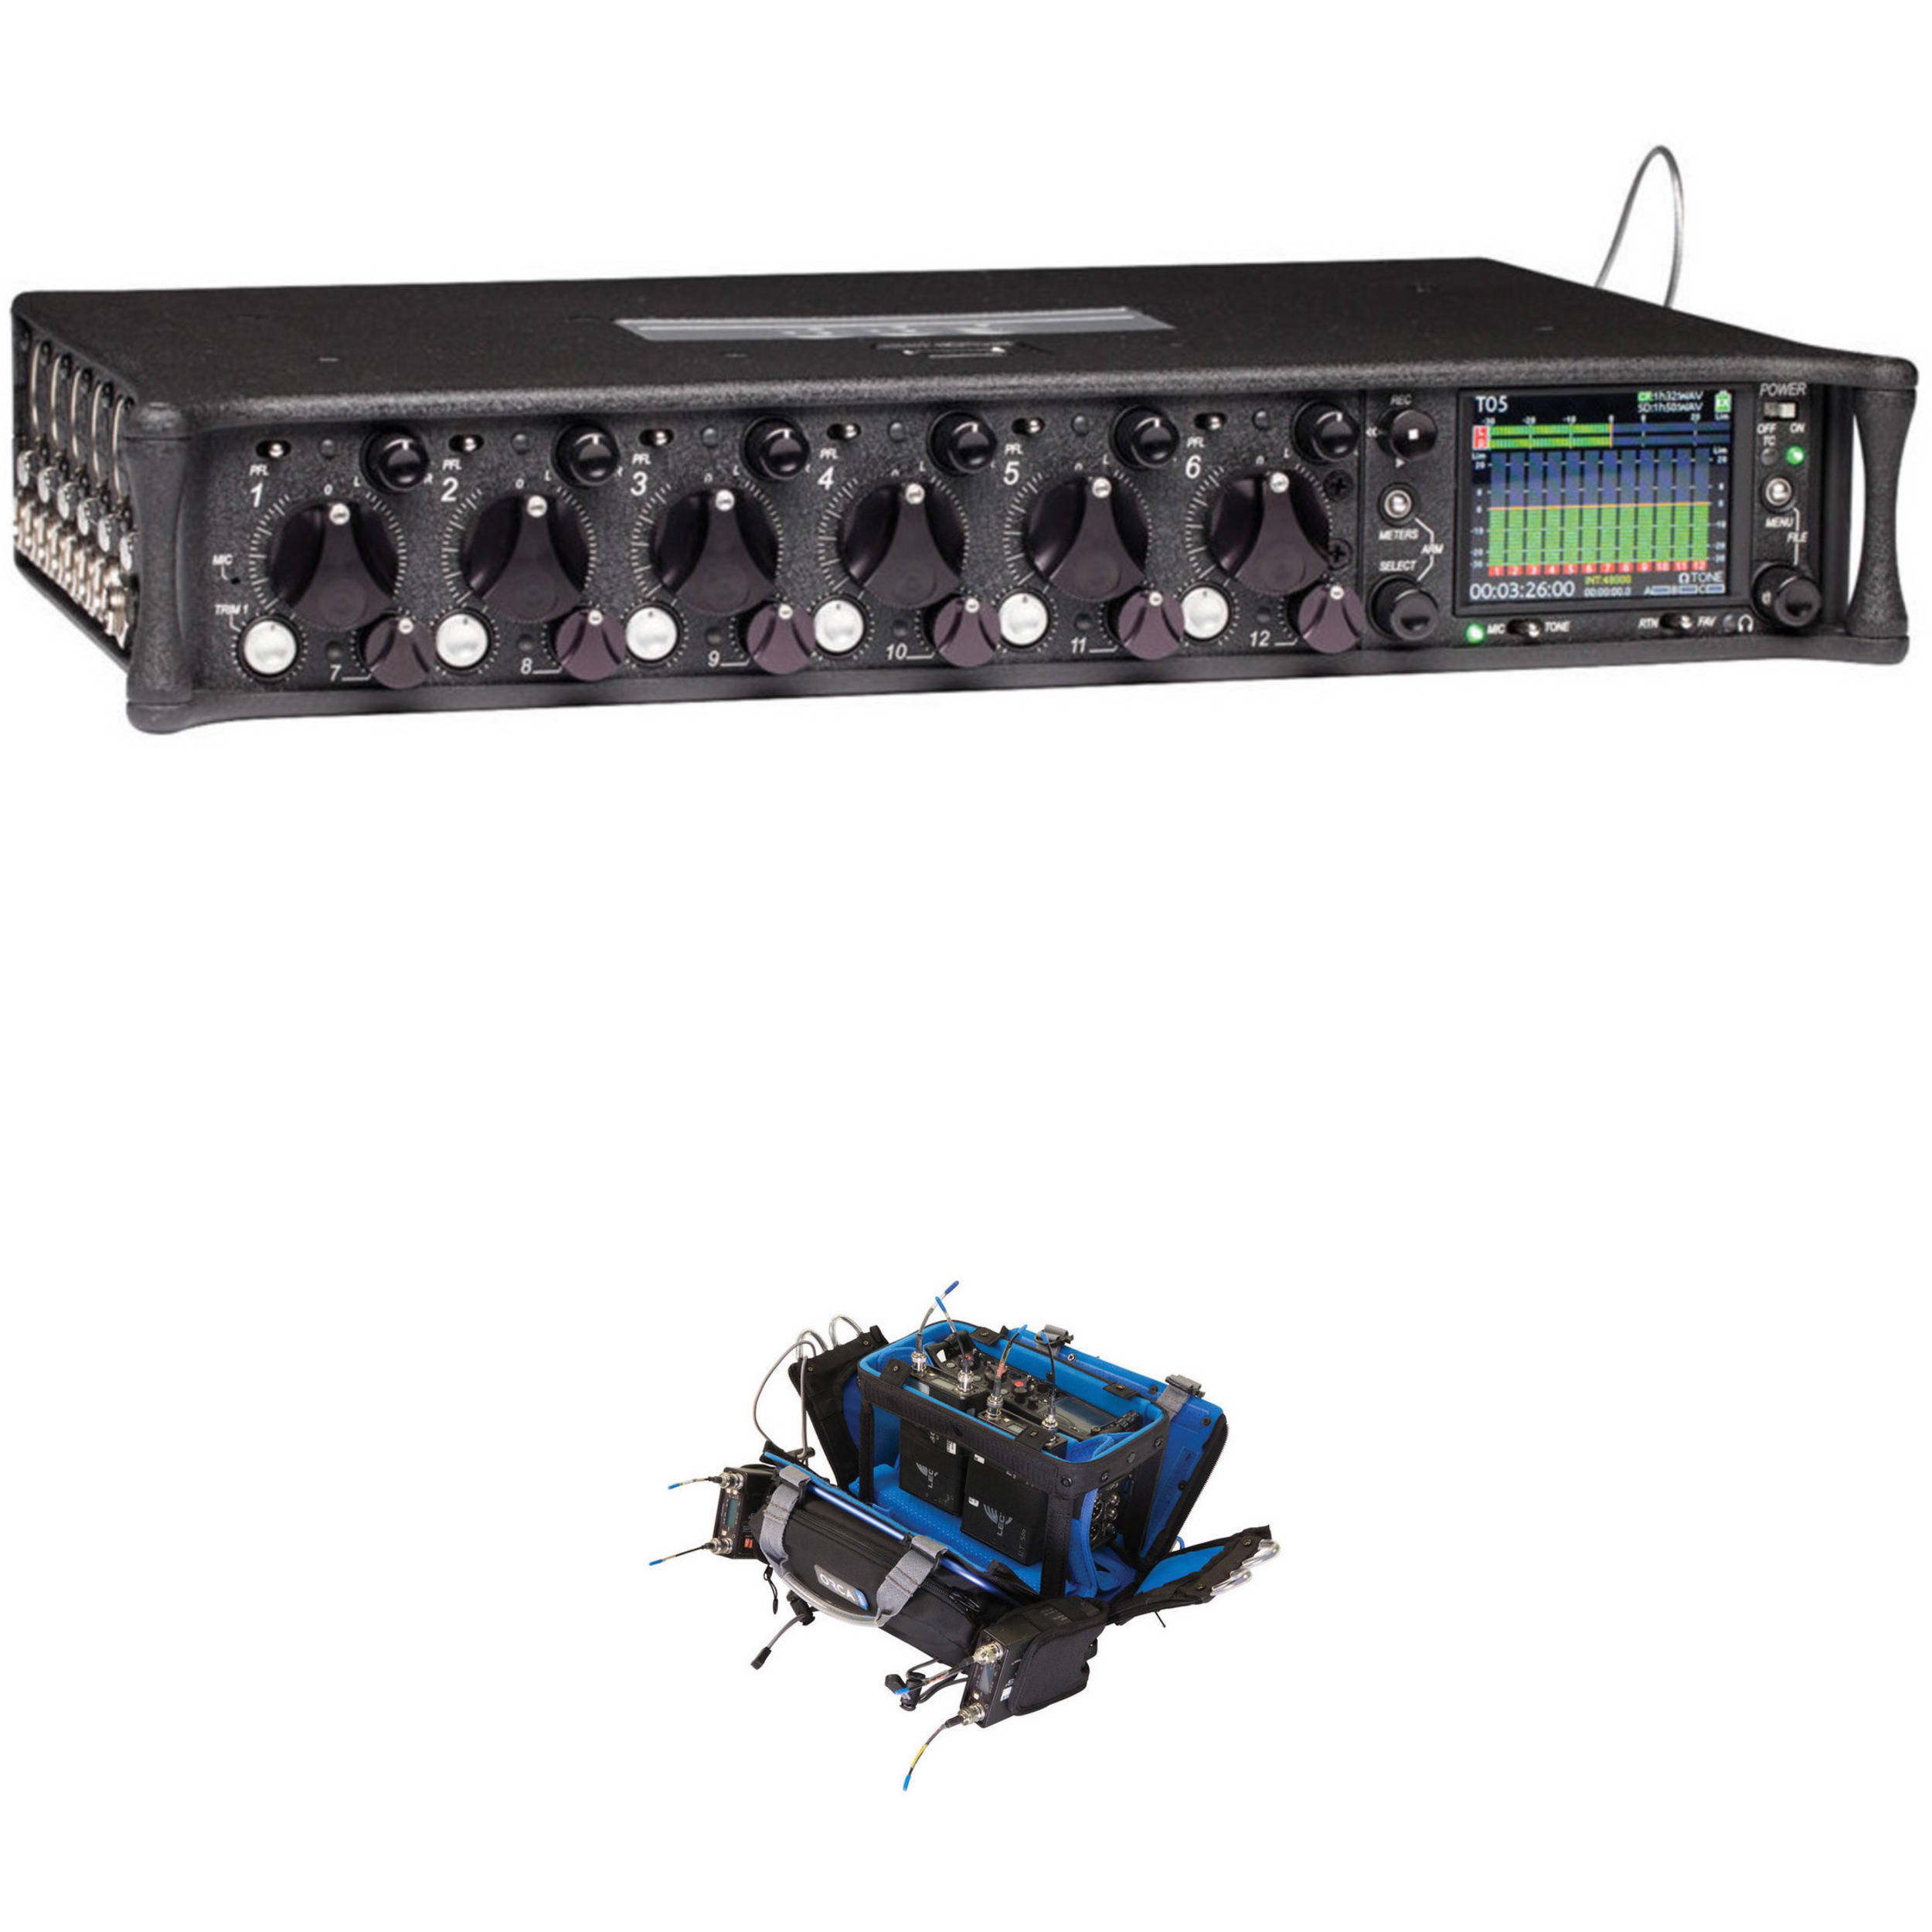 Voltase Hobby 2x12 W Hi Fi Audio Power Amplifiers With Mute